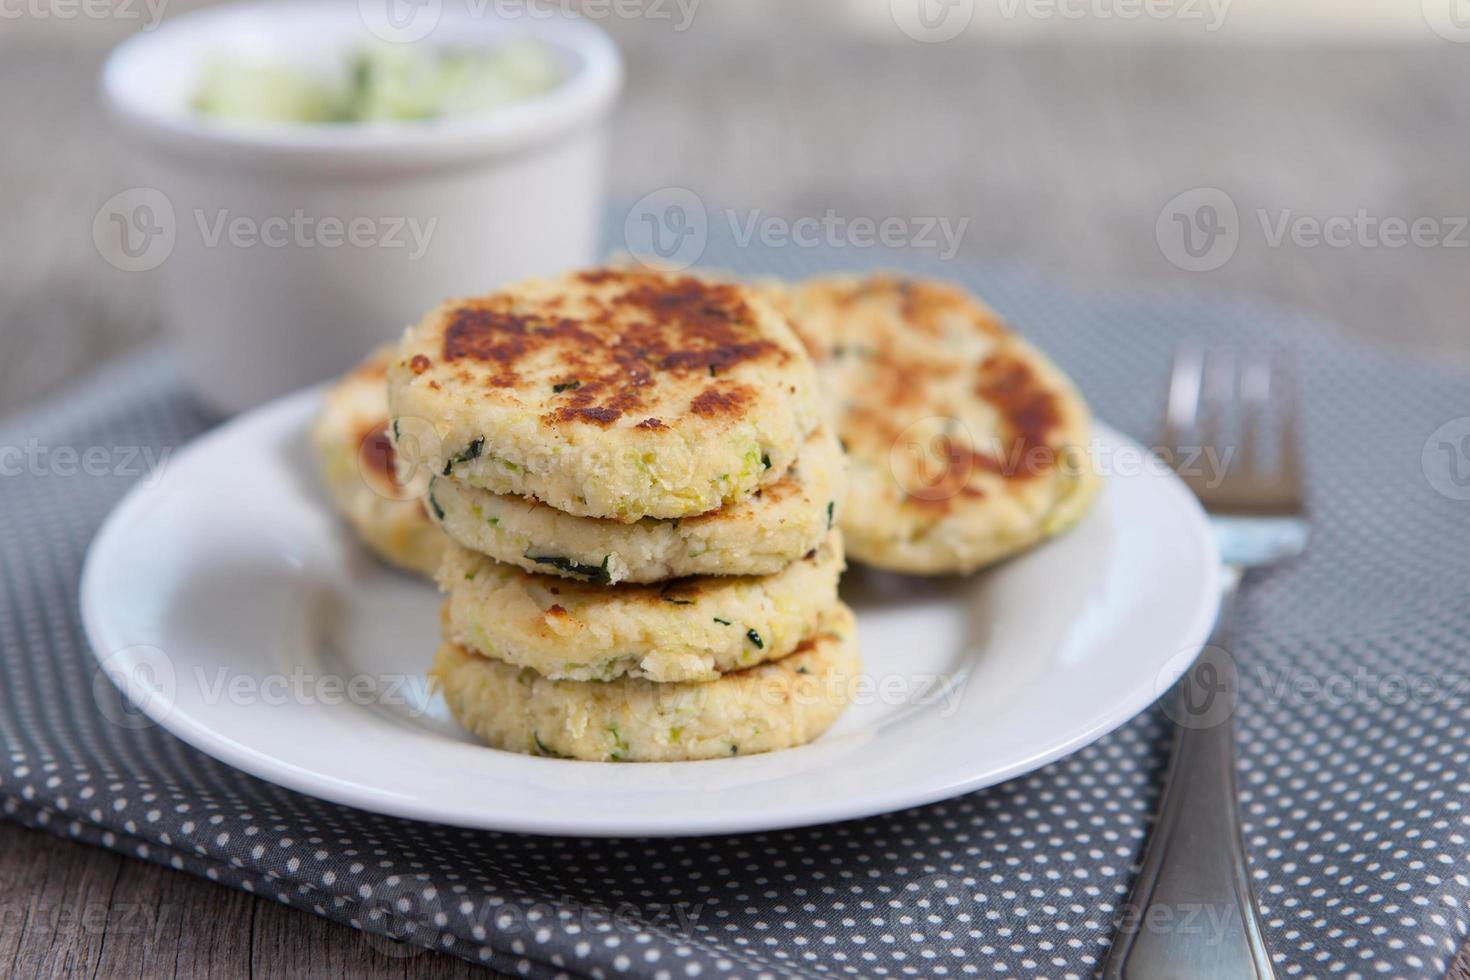 Paleo style zucchini fritters made with coconut flour photo